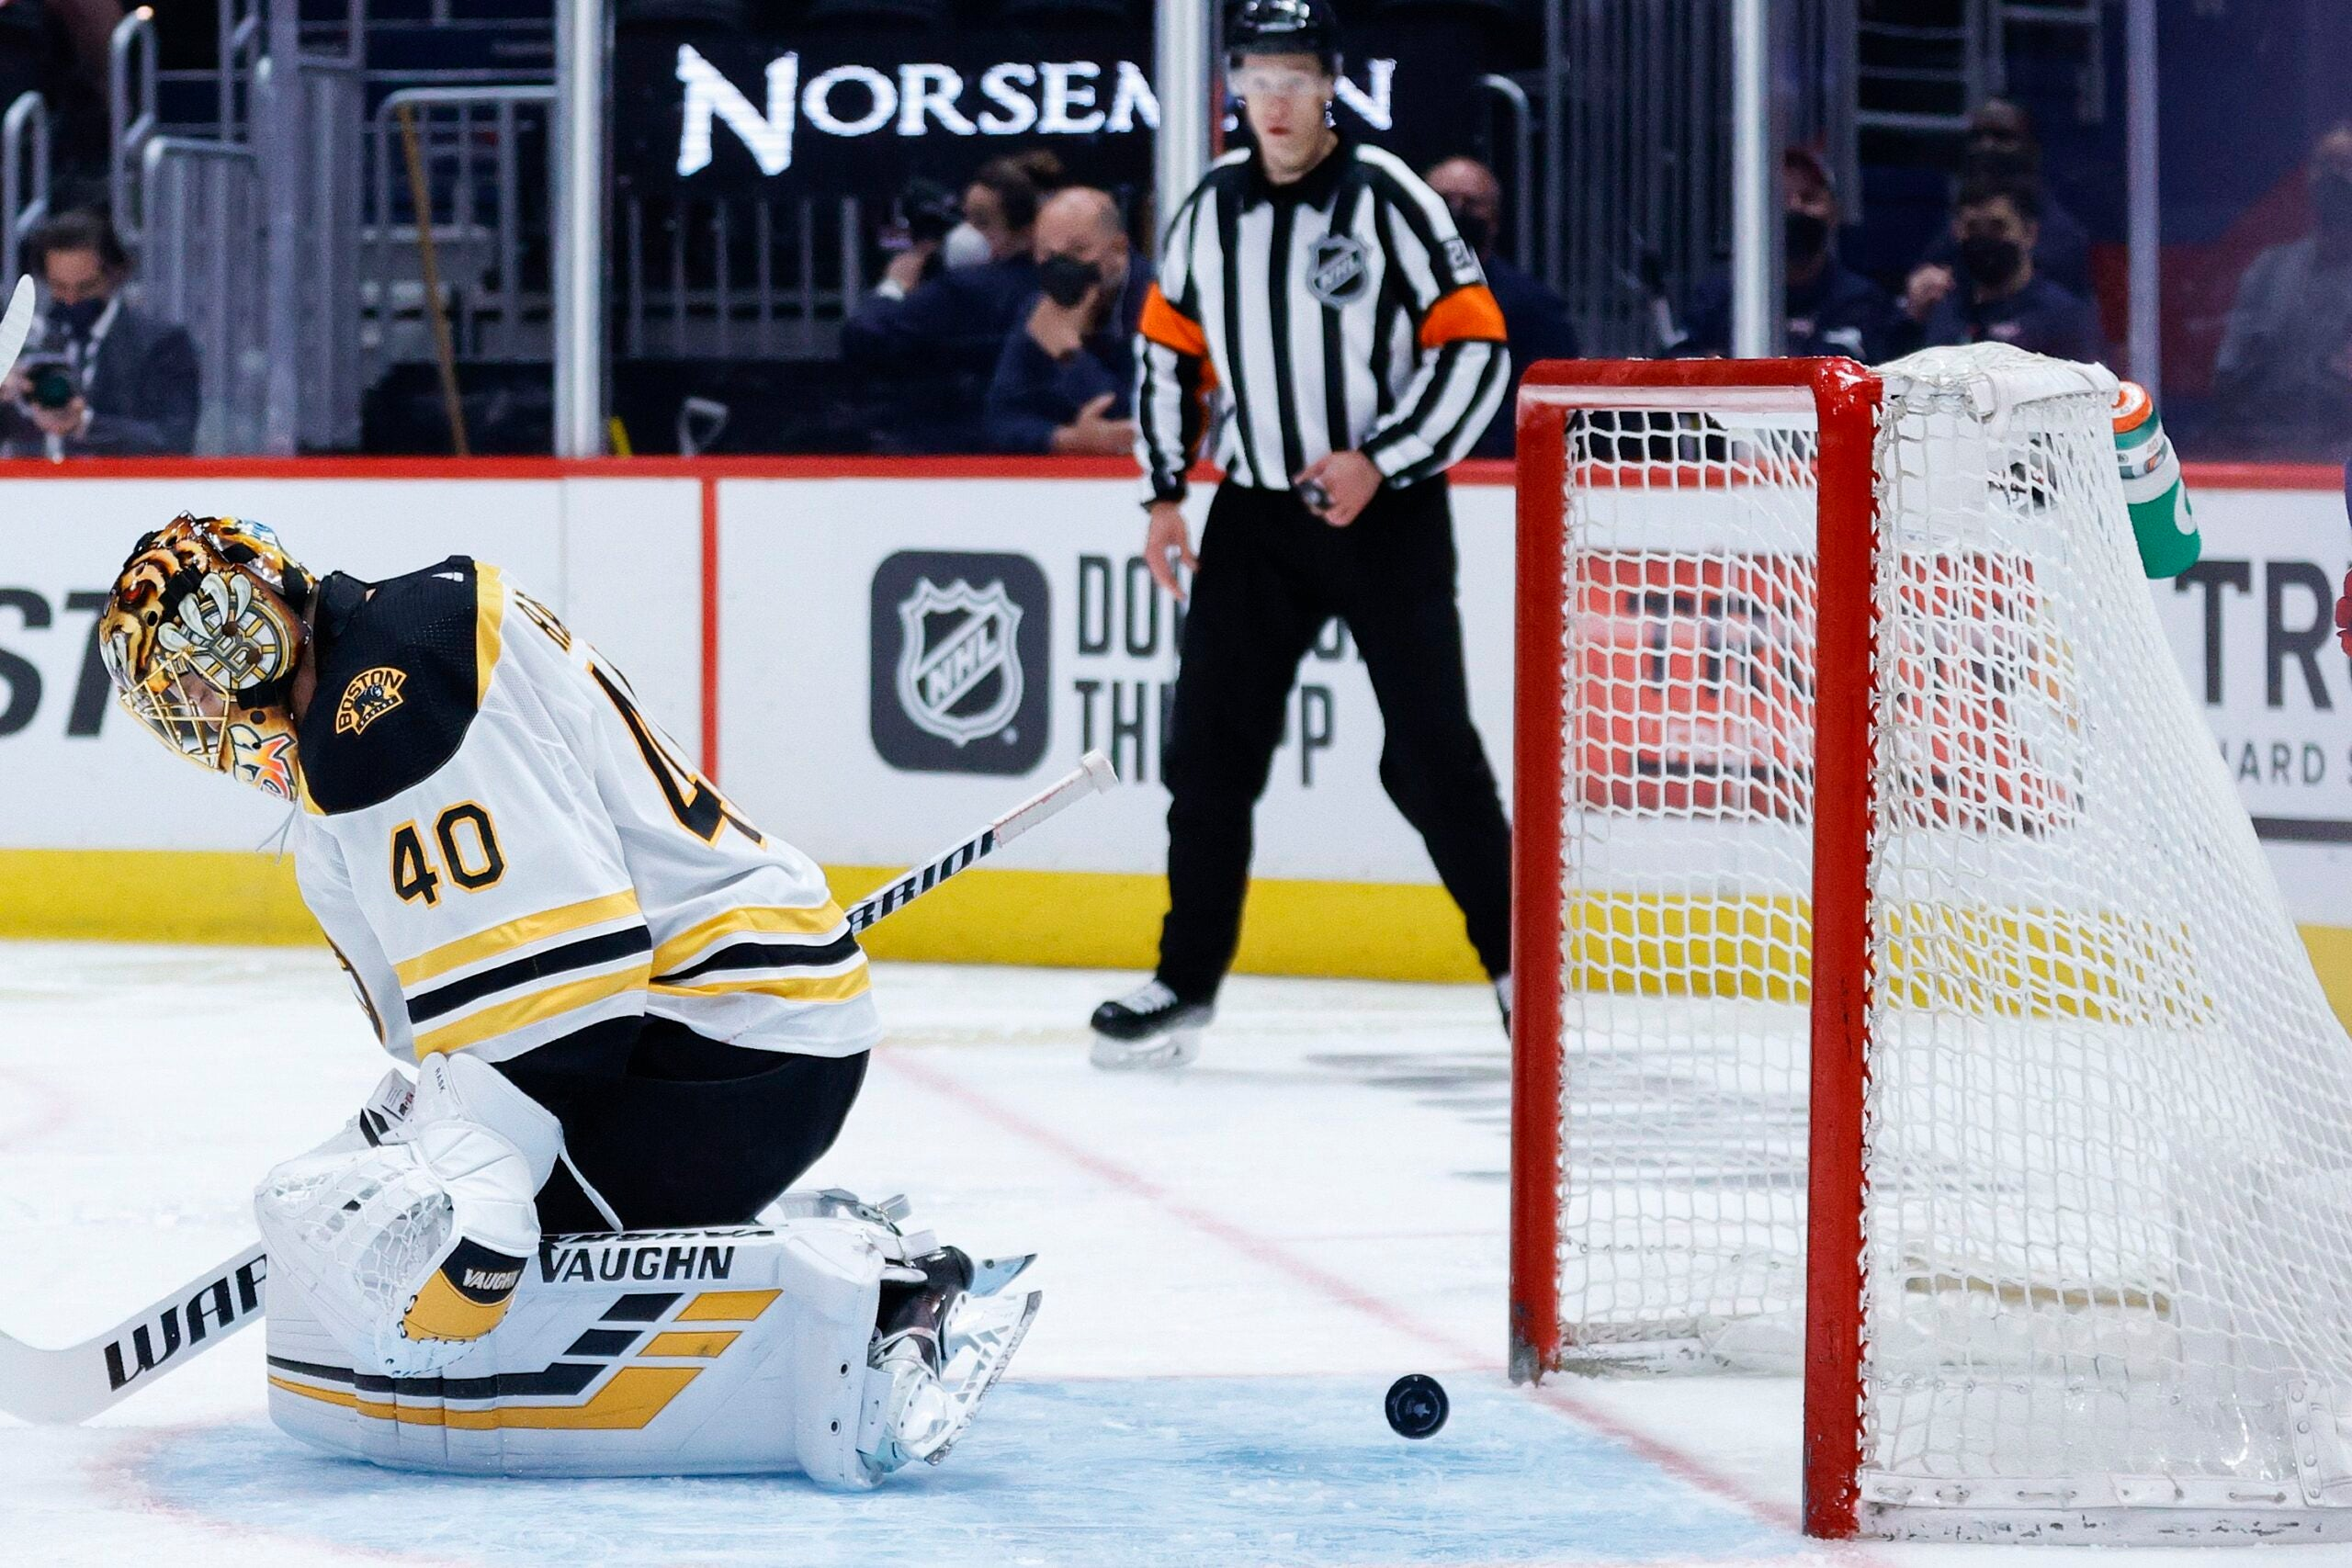 Tuukka Rask explained what happened on Nic Dowd's overtime winner in Game 1 Tuukka Rask explained what happened on Nic Dowd's overtime winner in Game 1